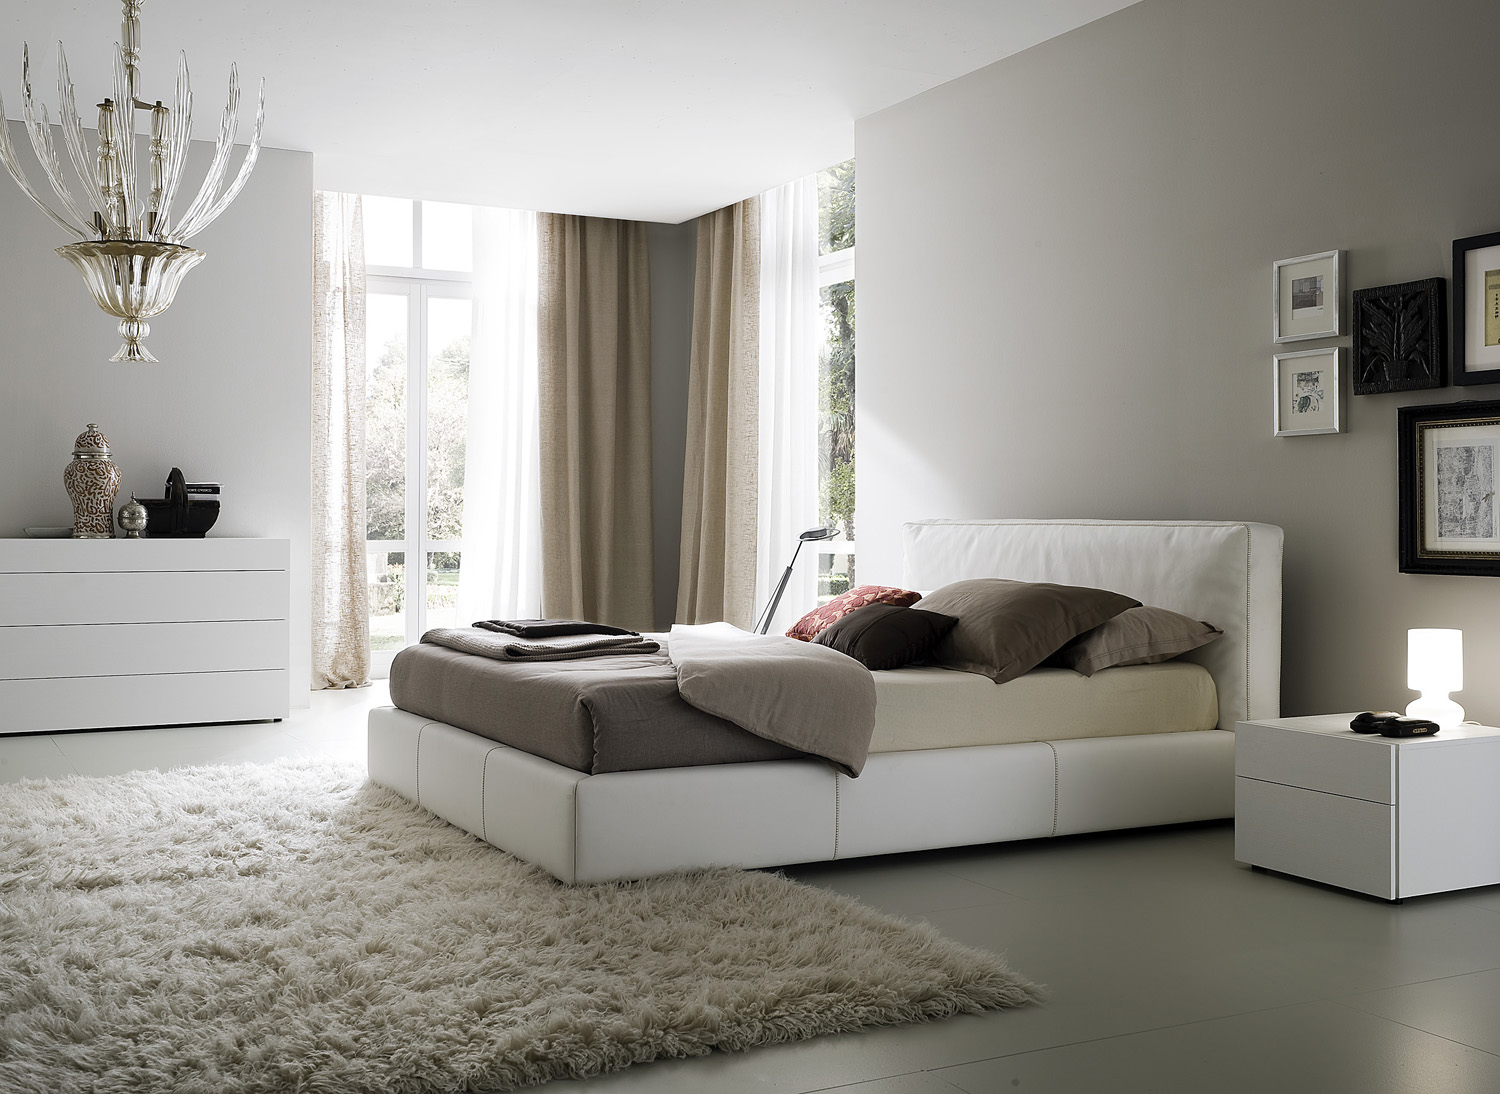 Bedroom decorating ideas from evinco for Bedroom planning ideas